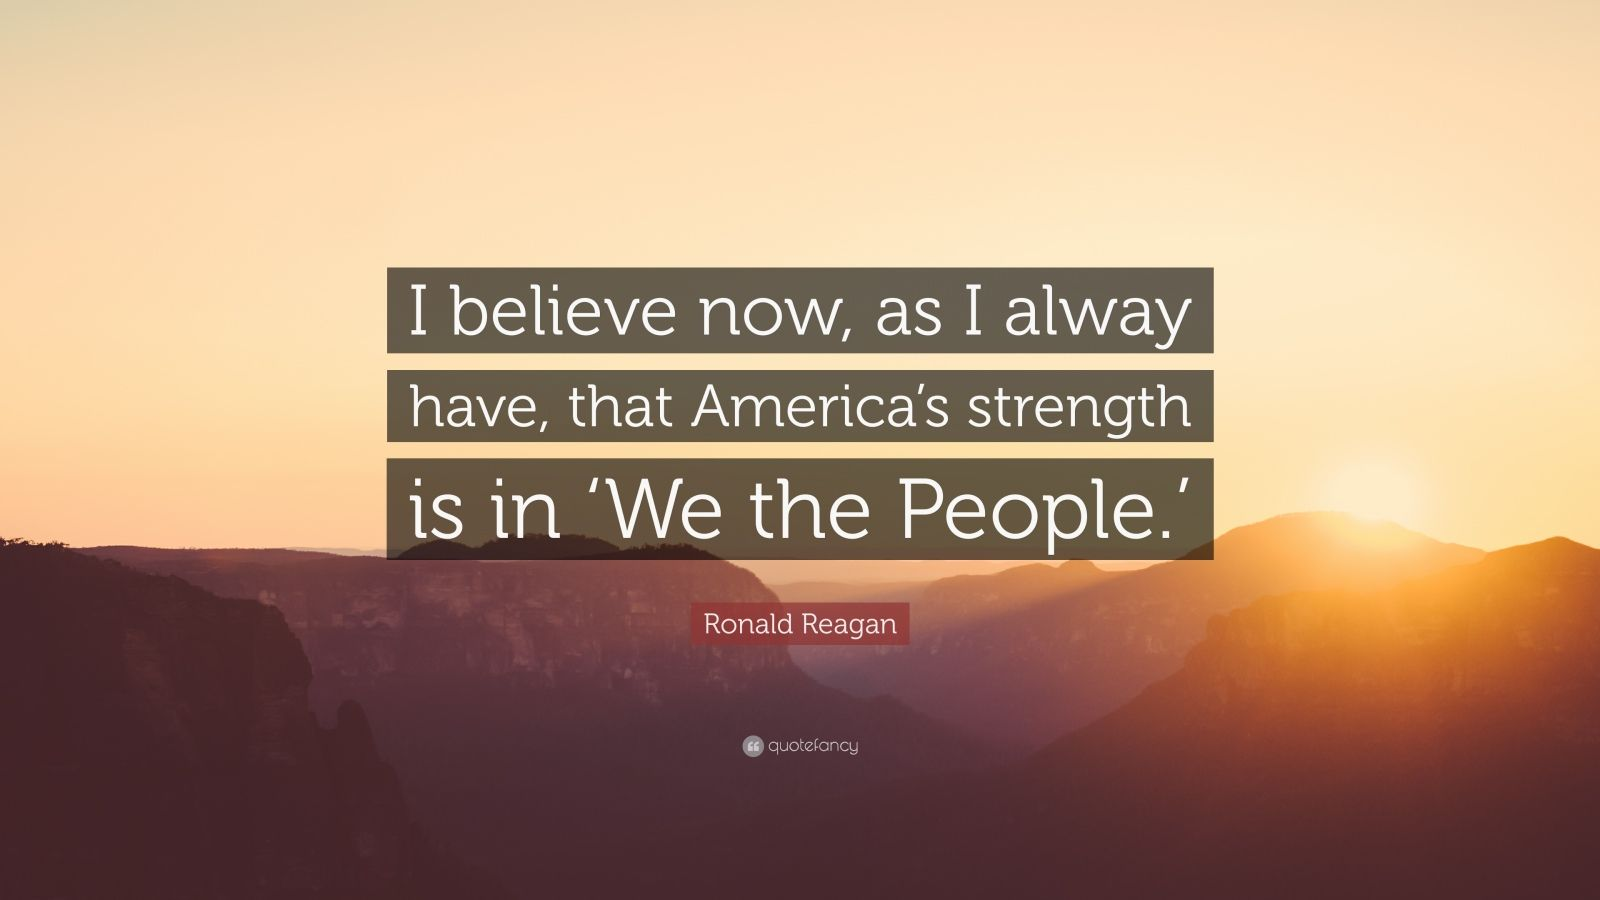 """Ronald Reagan Quote: """"I believe now, as I alway have, that America's strength is in 'We the People.'"""""""